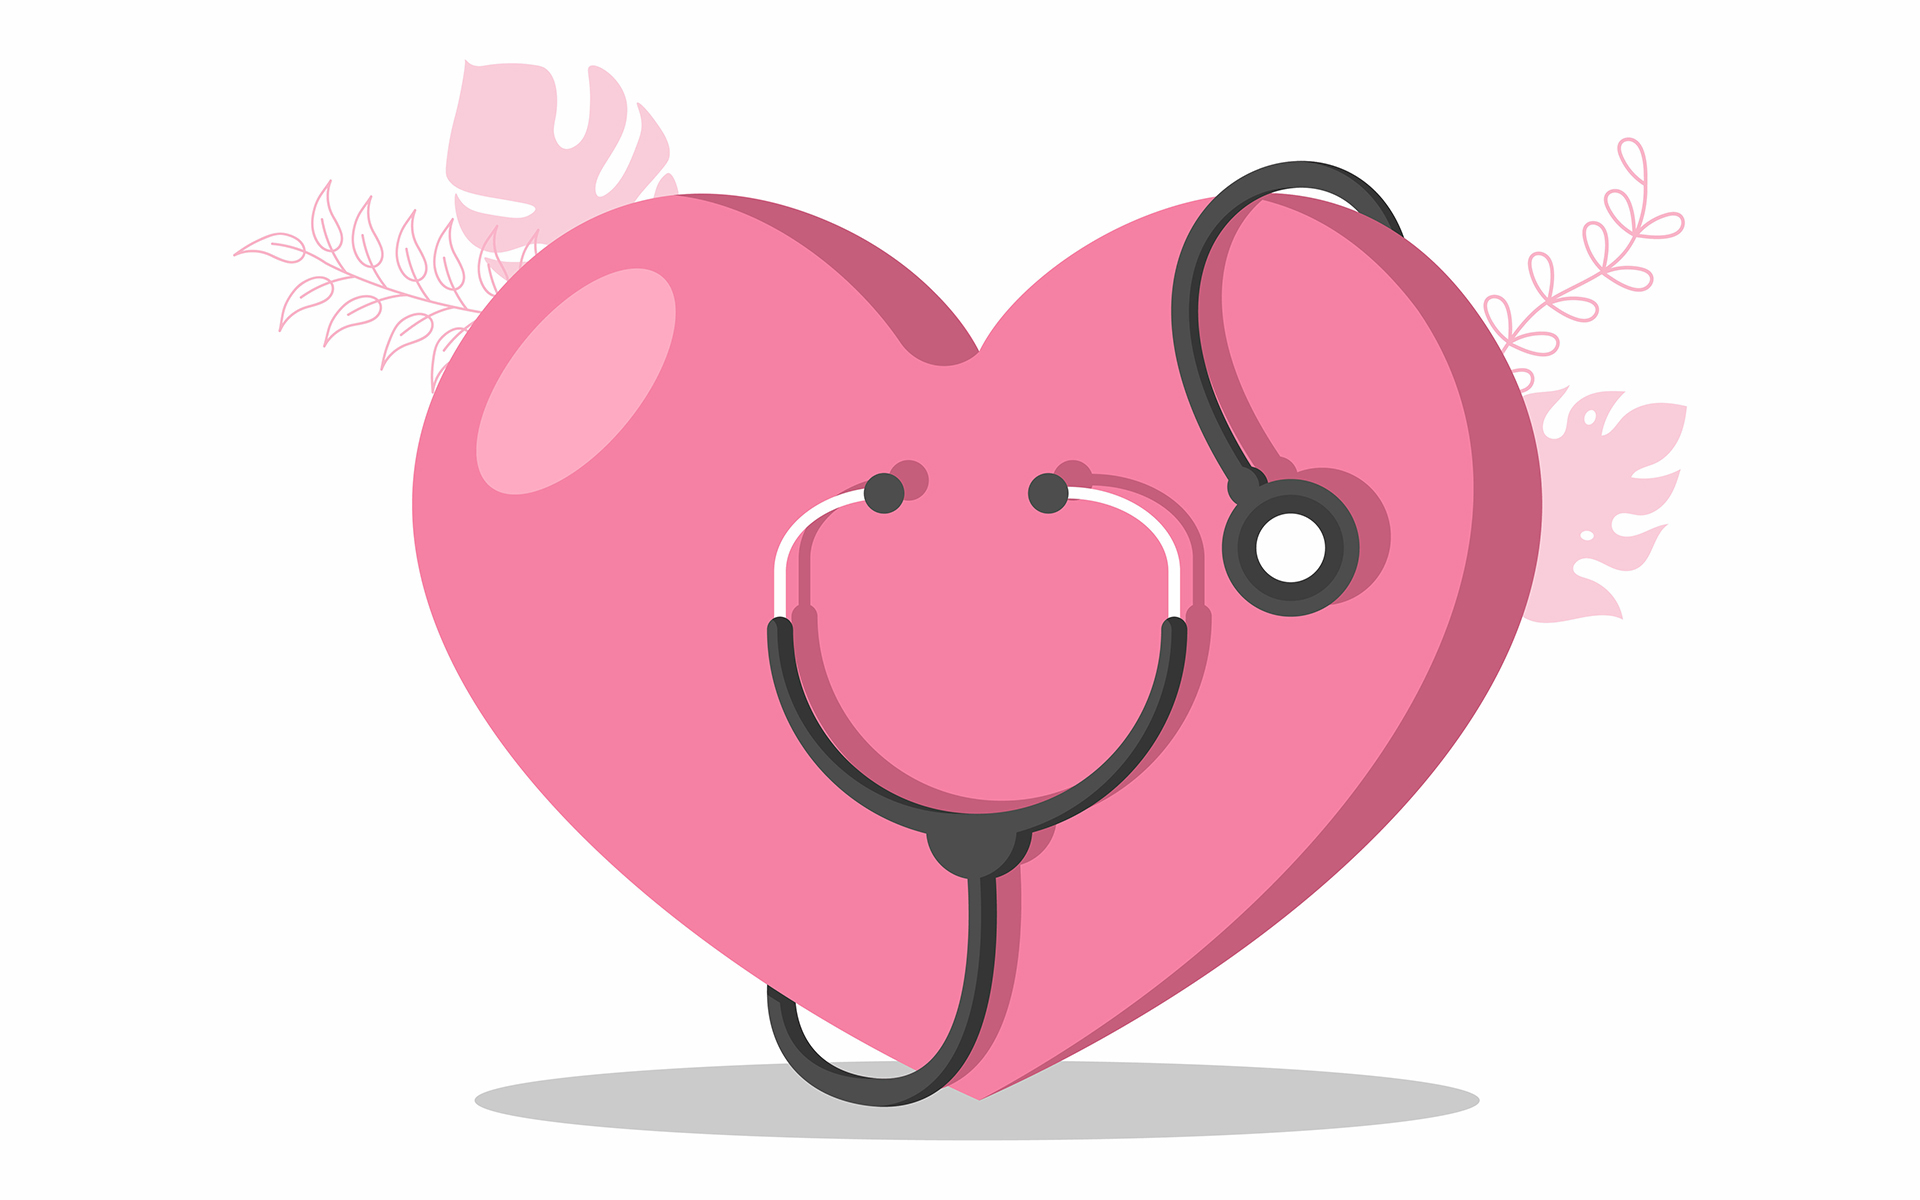 A Compassion practice for healthcare workers - Healthcare and Medical Equipment Icons in Form of Heart Illustration